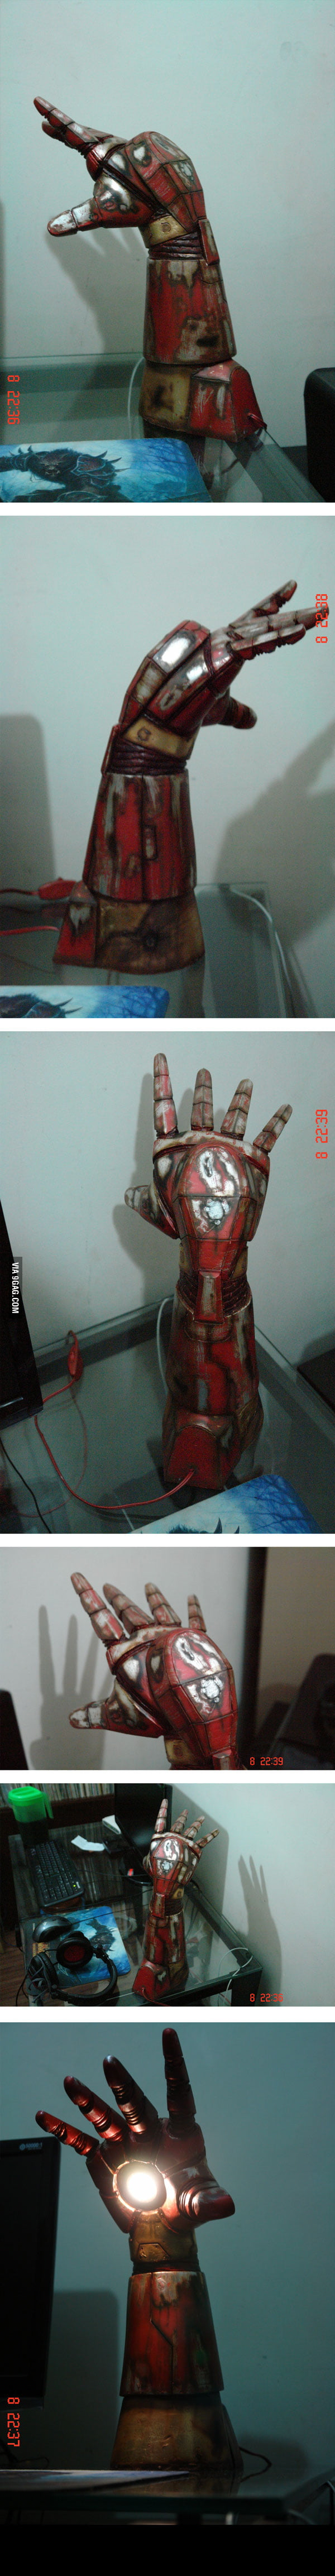 Iron Man night light (made by my friend Sérgio Oliveira)